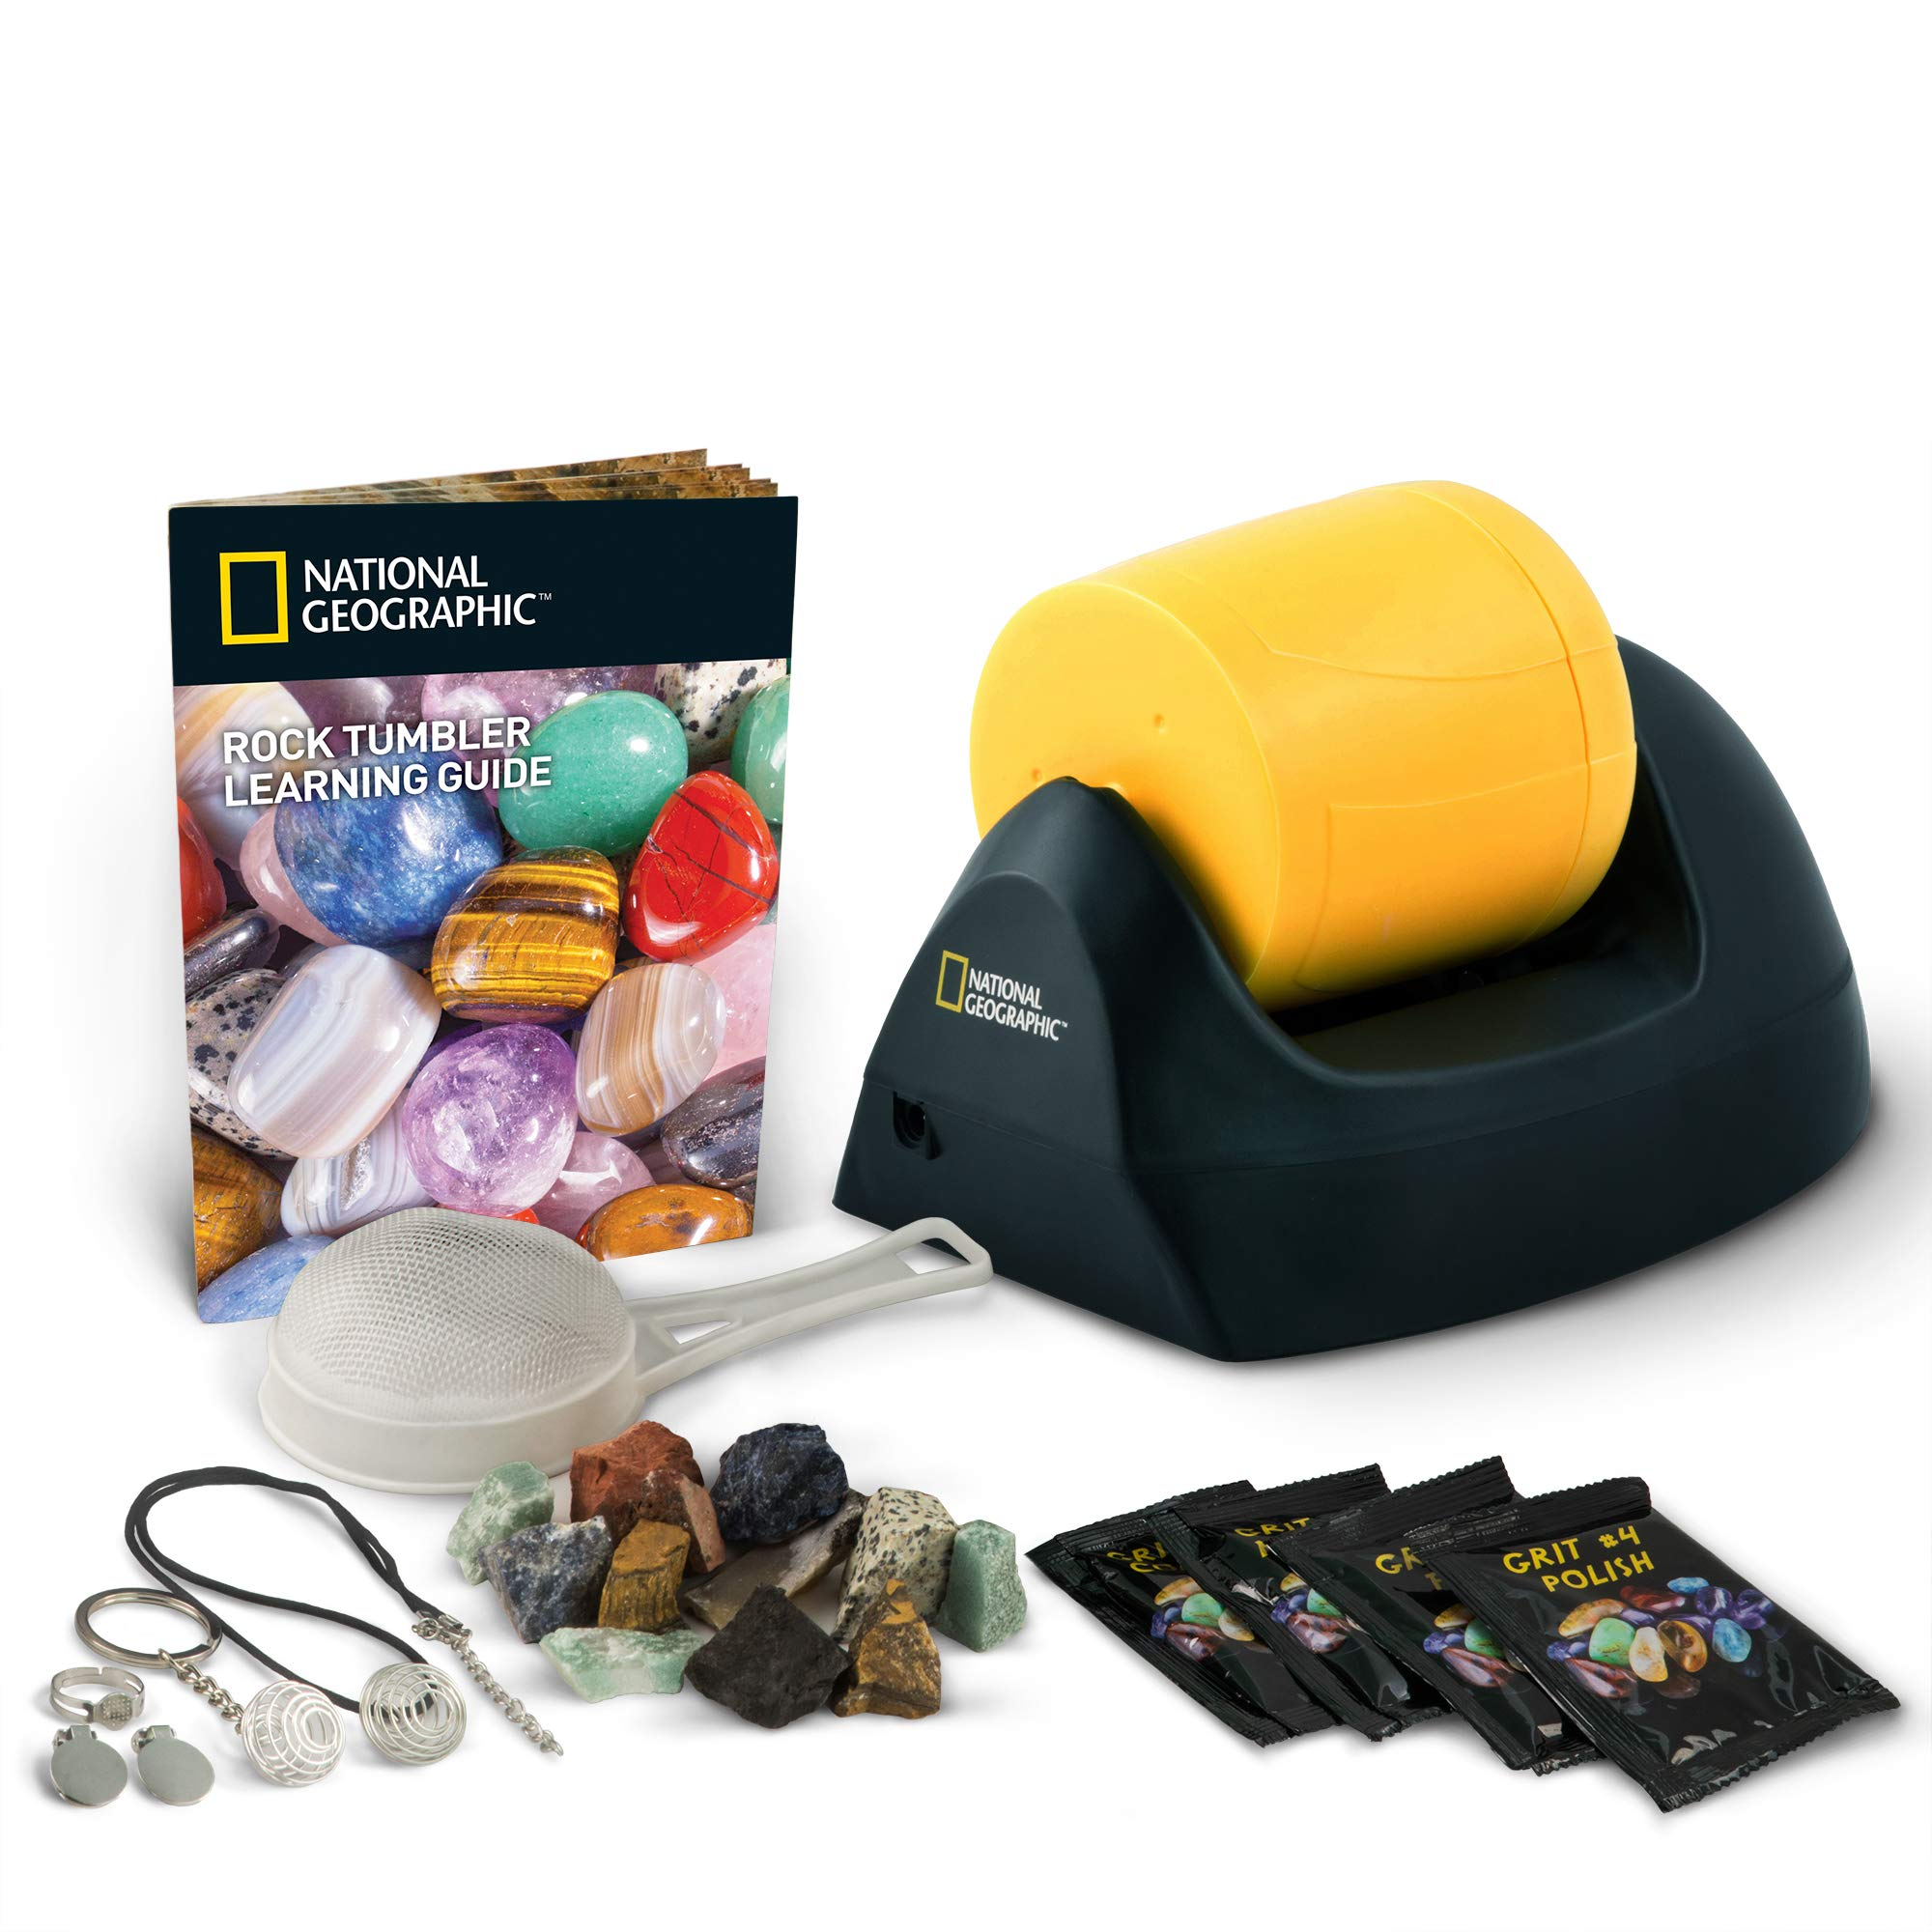 NATIONAL GEOGRAPHIC Starter Rock Tumbler Kit-Includes Rough Gemstones, 4 Polishing Grits, Jewelry Fastenings & Detailed Learning Guide - Great Stem Science Kit For Mineralogy & Geology Enthusiasts by NATIONAL GEOGRAPHIC